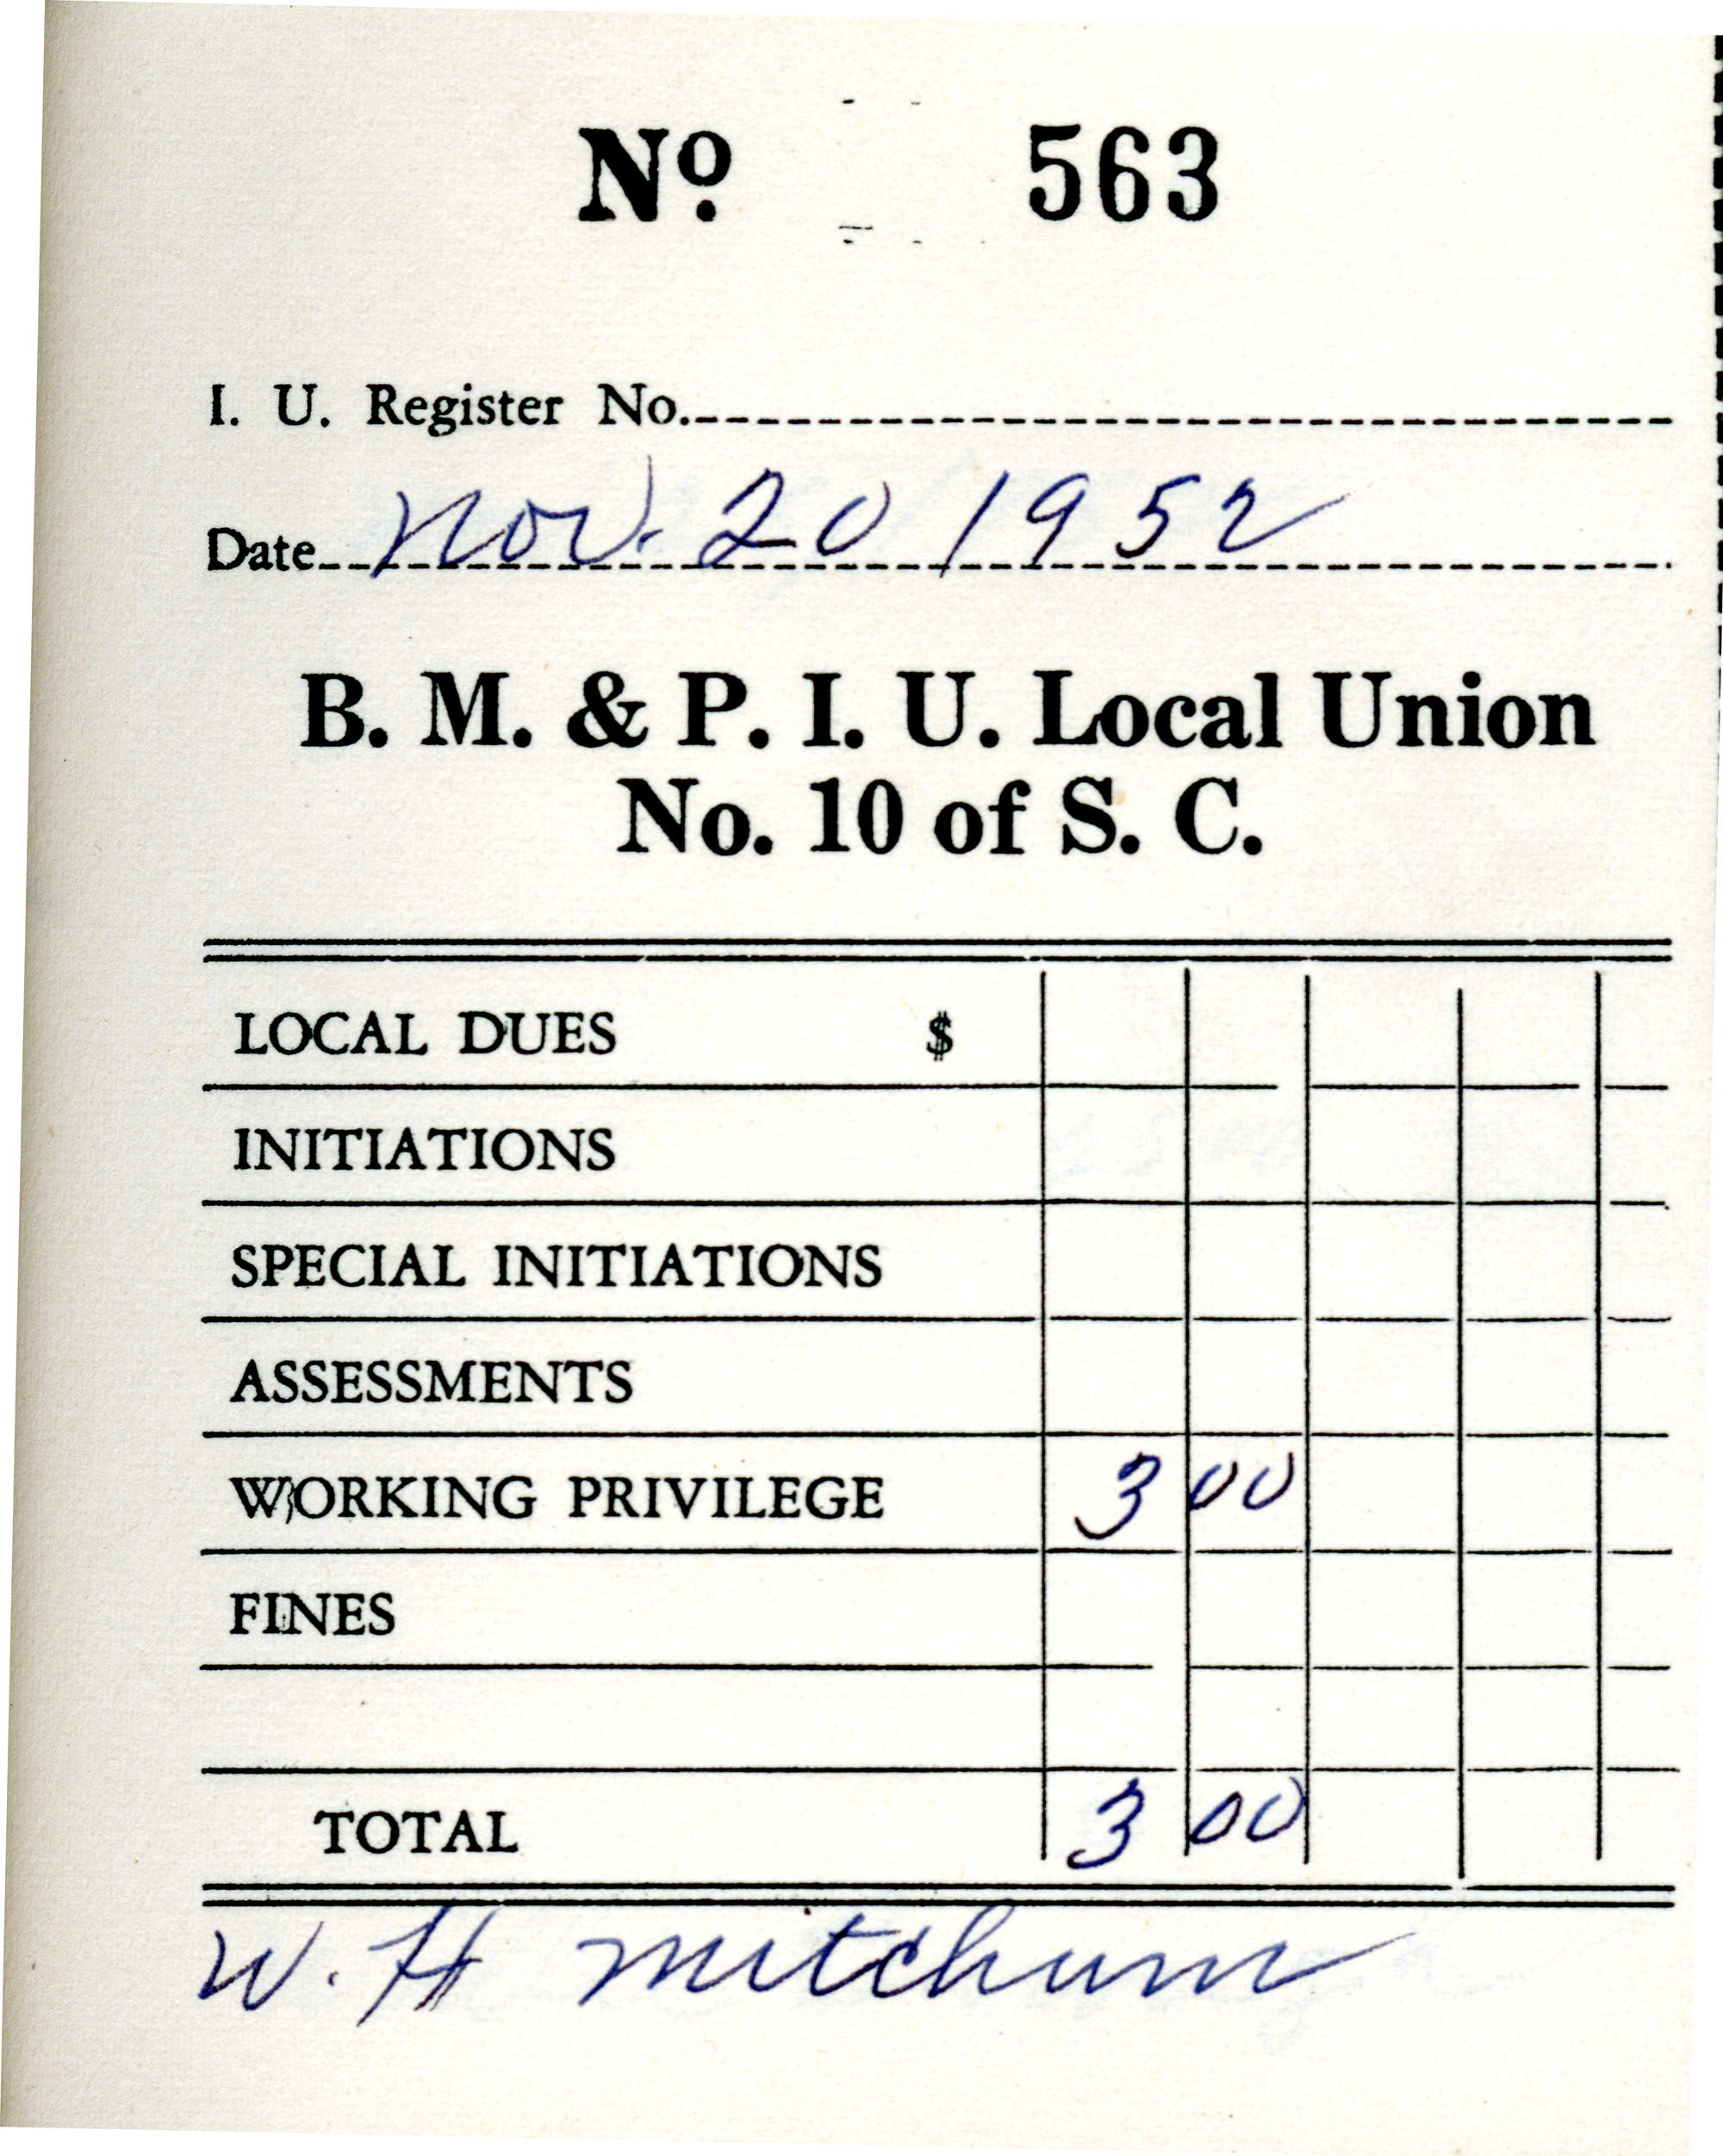 Receipt Book 1, Page 13